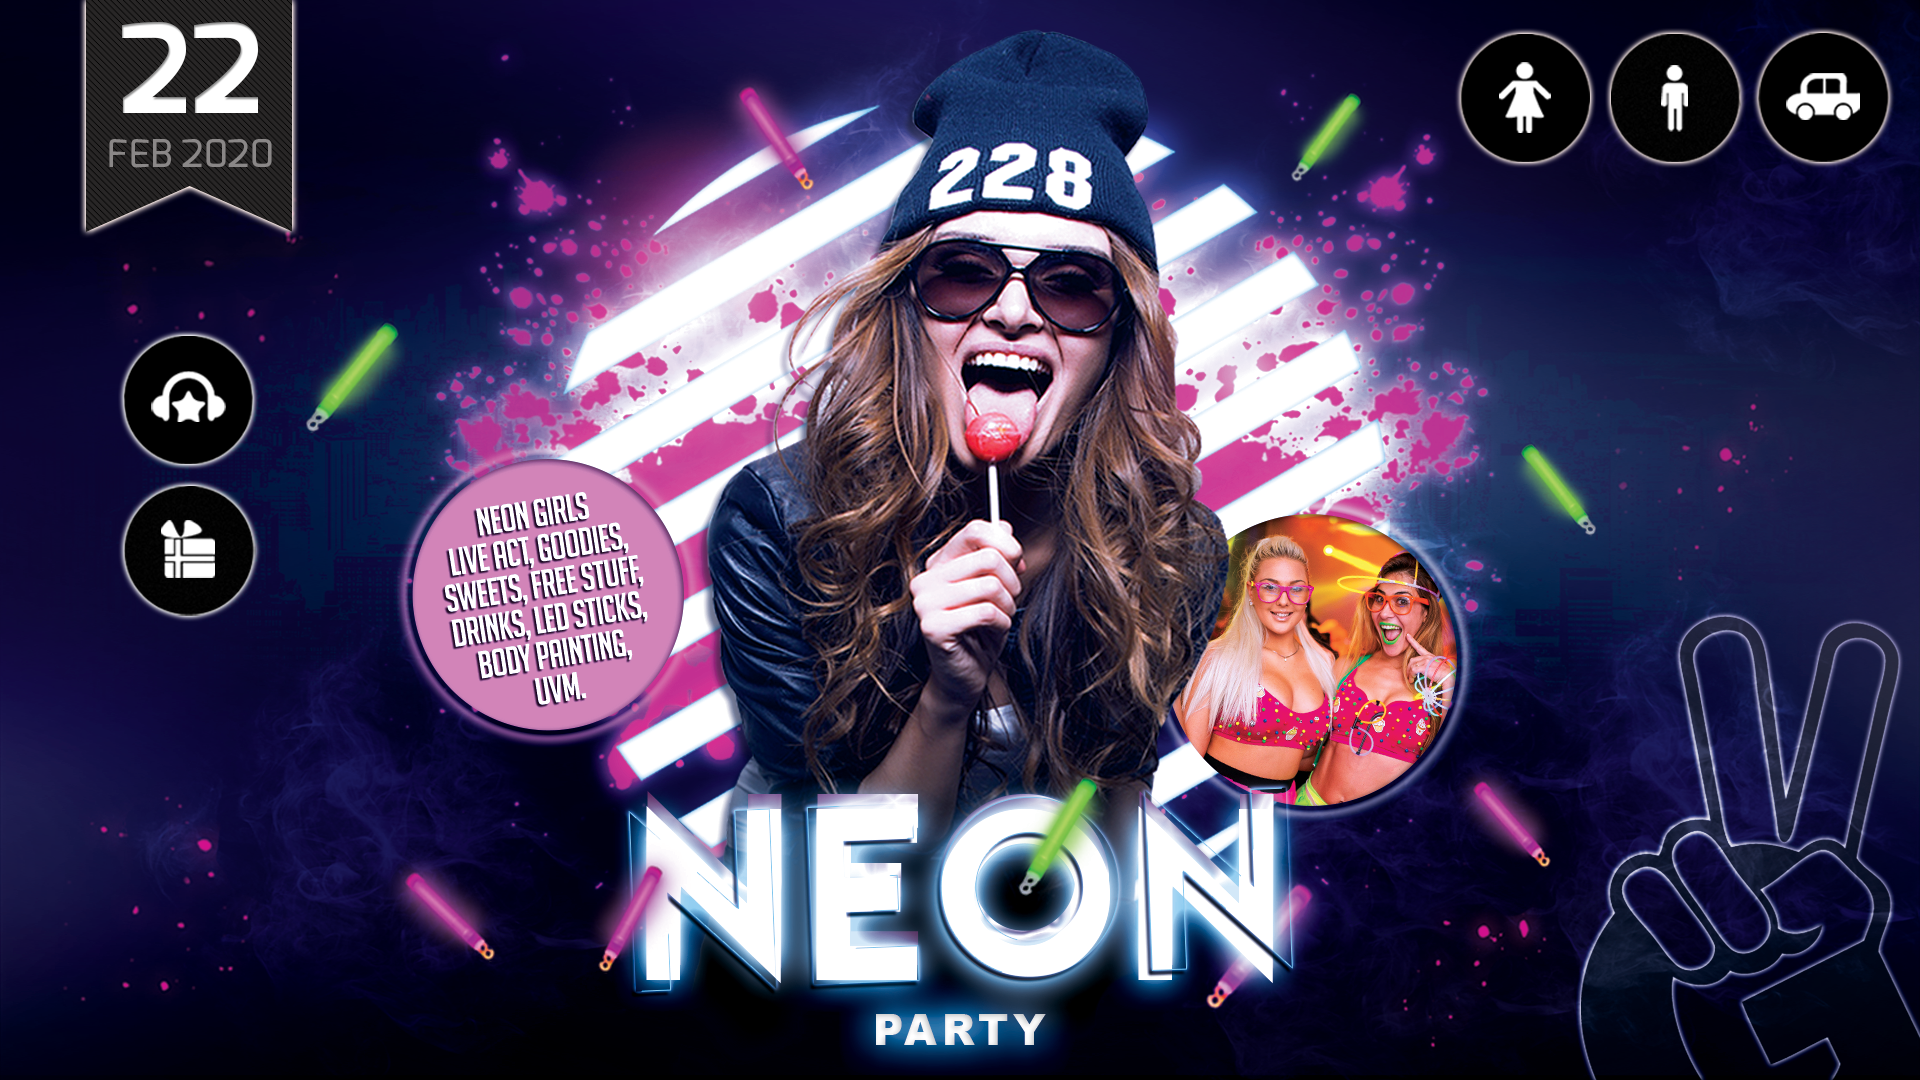 NEON PARTY | Carneval & Neon Painting Edition